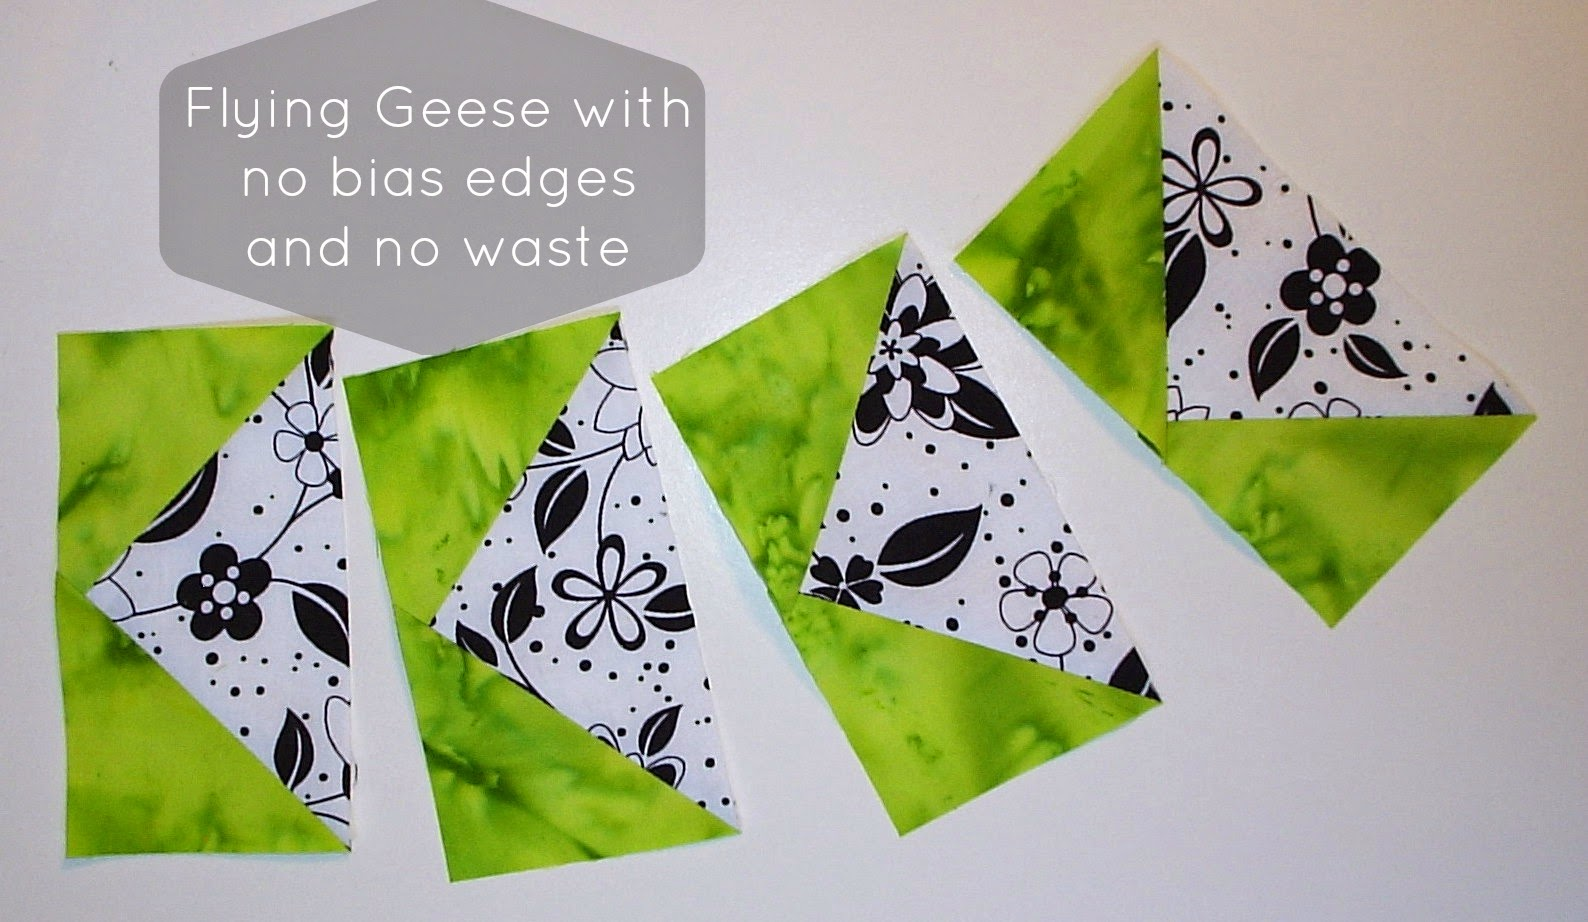 http://sewfreshquilts.blogspot.ca/2013/06/flying-geese-tutorial-no-bias-edges-and.html